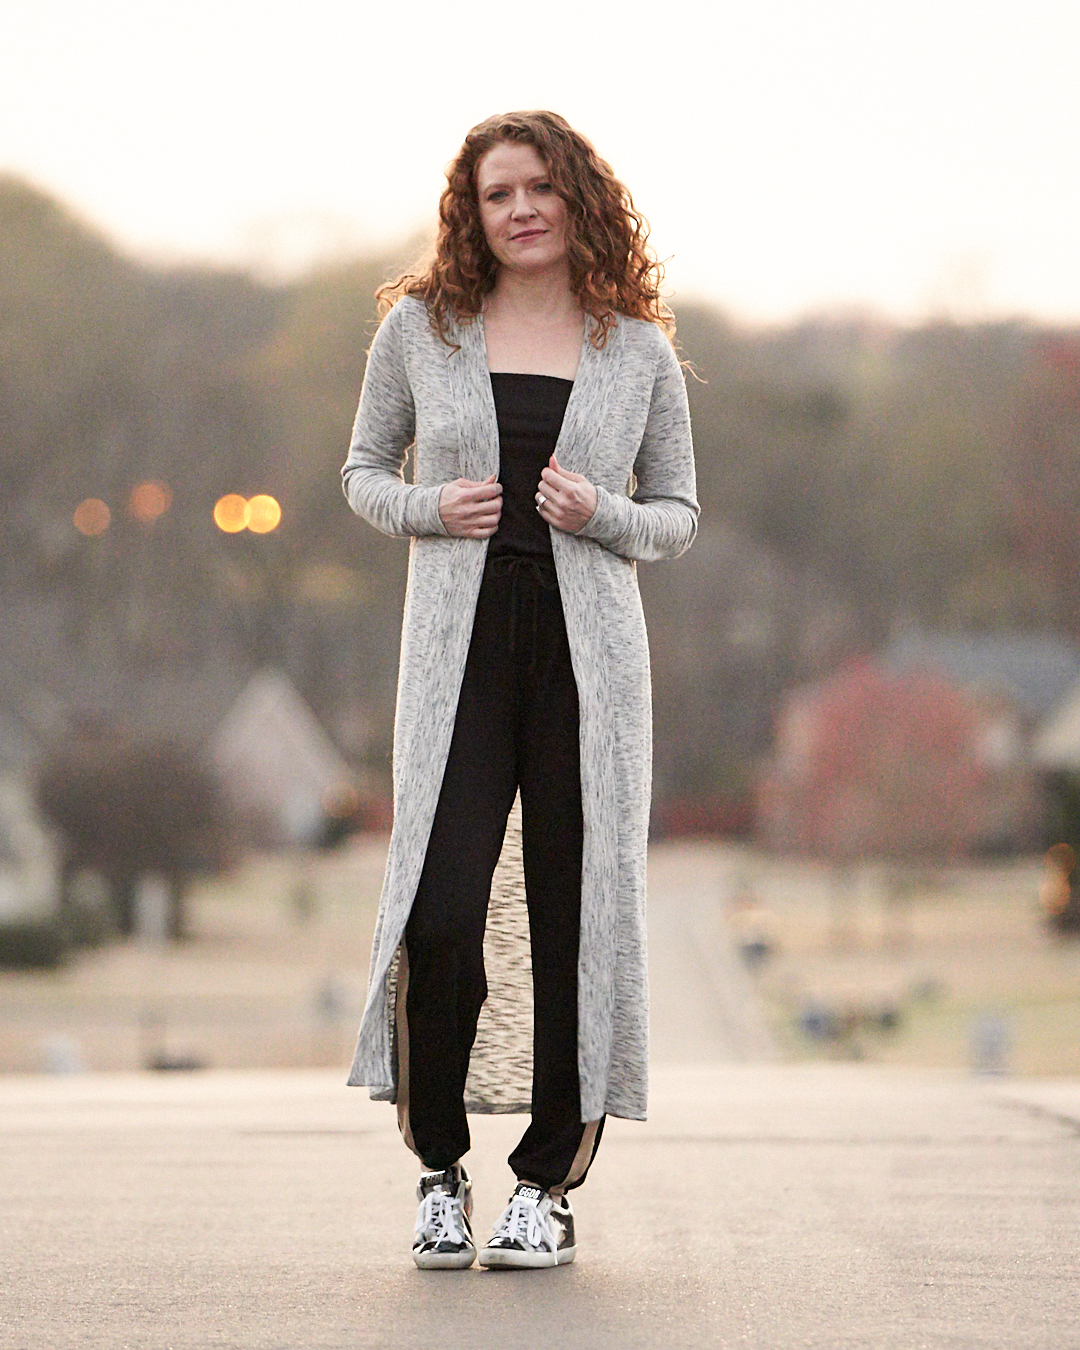 Long Cardi and GG Sneakers and Nickel and Suede Earrings